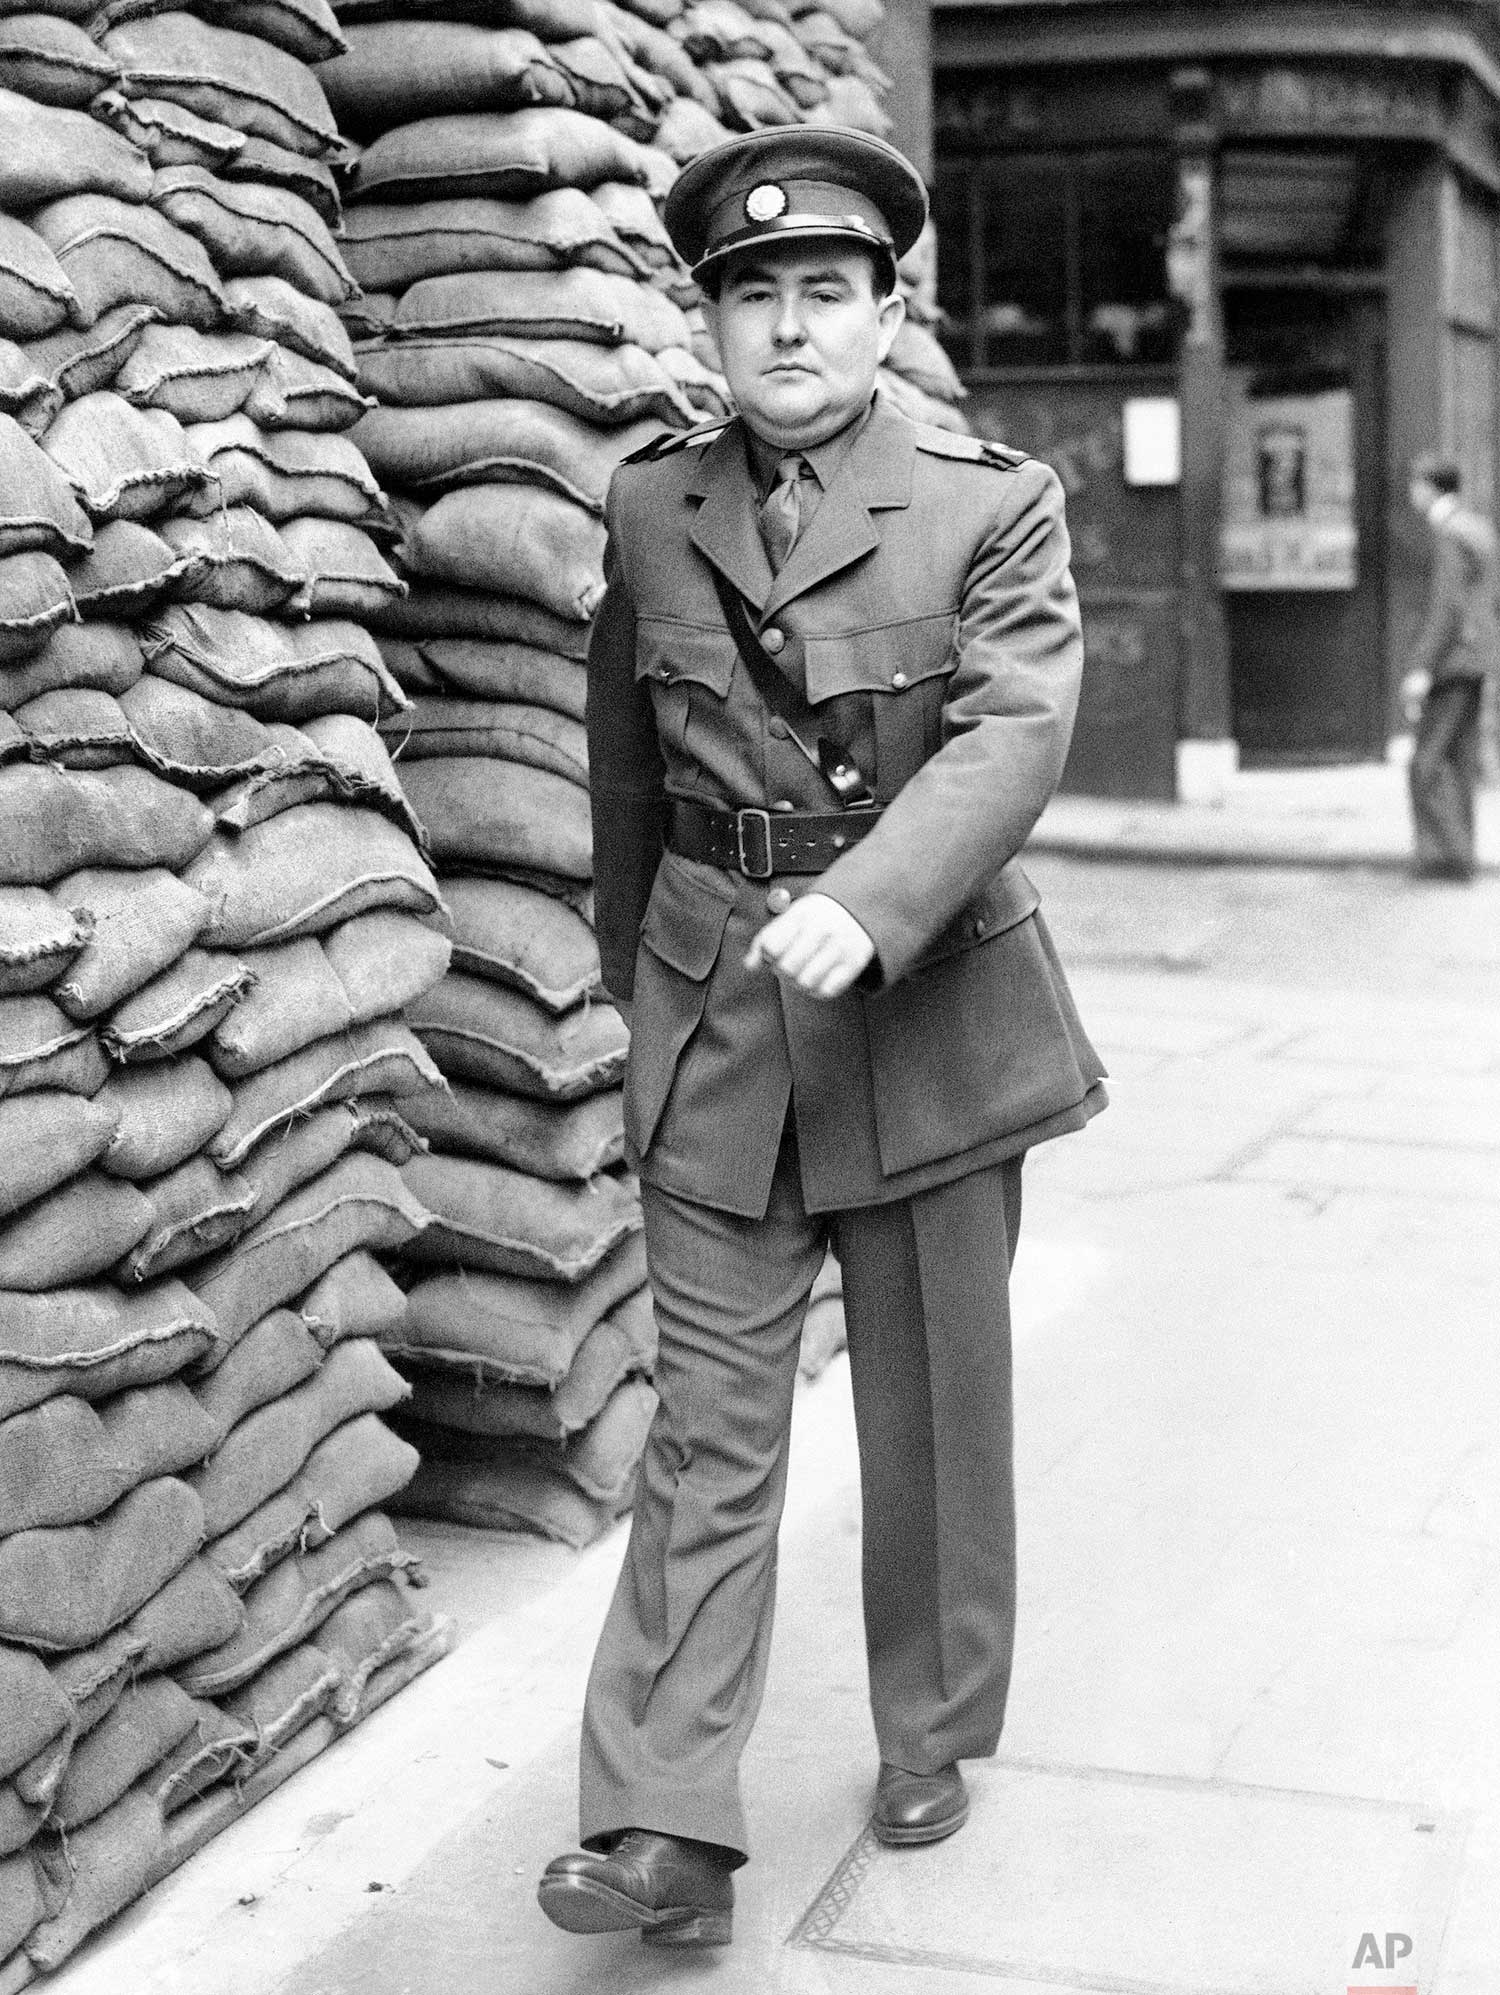 """Drew Middleton, Associated Press reporter in London, has become a war correspondent and is to going to France next week, October 9-10th. He will wear the uniform of correspondents with the British Army: an officers uniform with special badges and a """"Press"""" armlet. Drew Middleton, Associated Press correspondent is shown in his uniform passing the sandbagged Associated Press building in London on Oct. 24, 1939. (AP Photo)"""